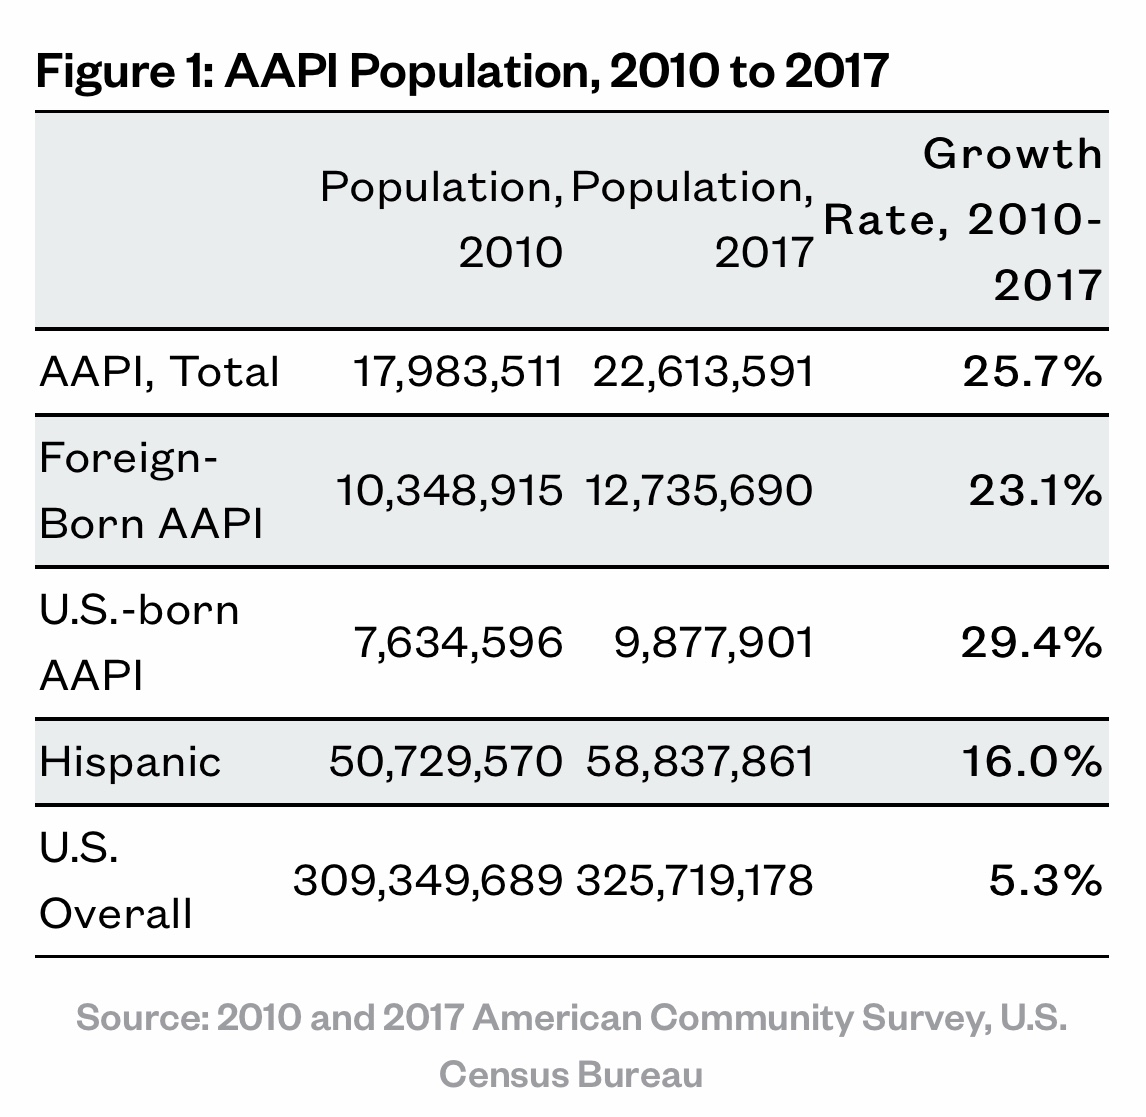 Income by race: why is Asian-American income so high